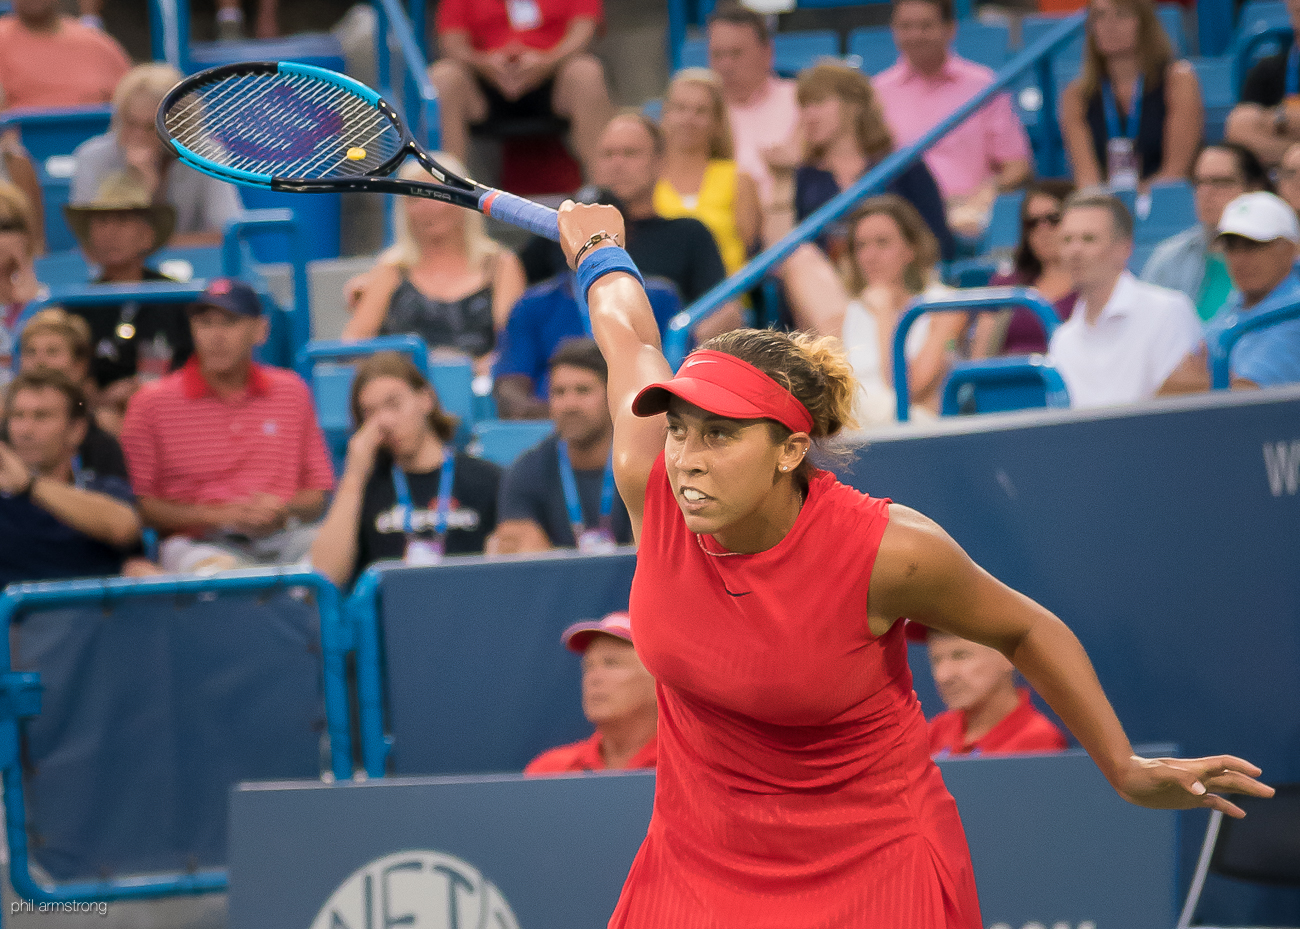 Madison Keys / Image: Phil Armstrong, Cincinnati Refined // Published: 8.15.17